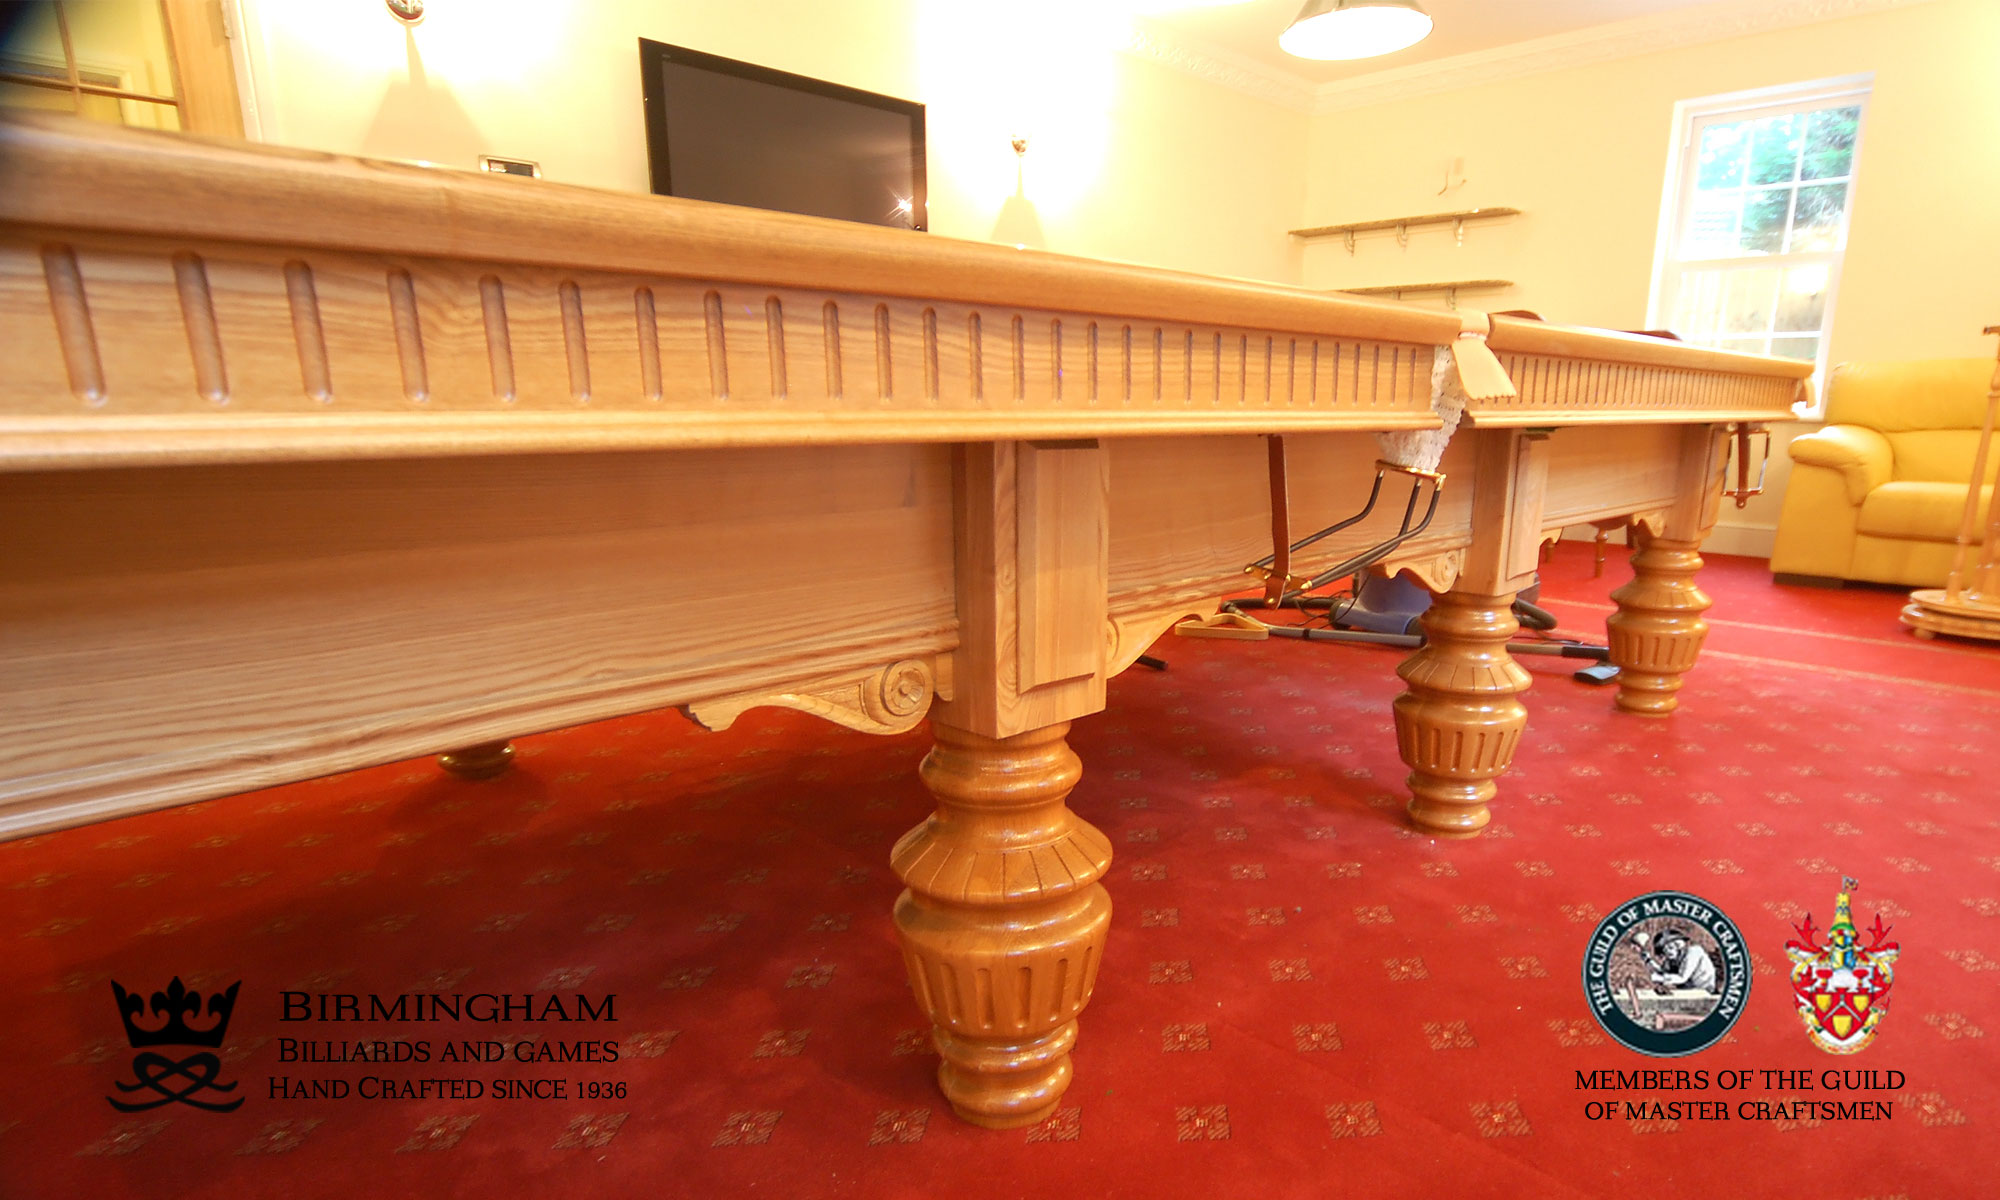 The classic monarch hand made pool tables